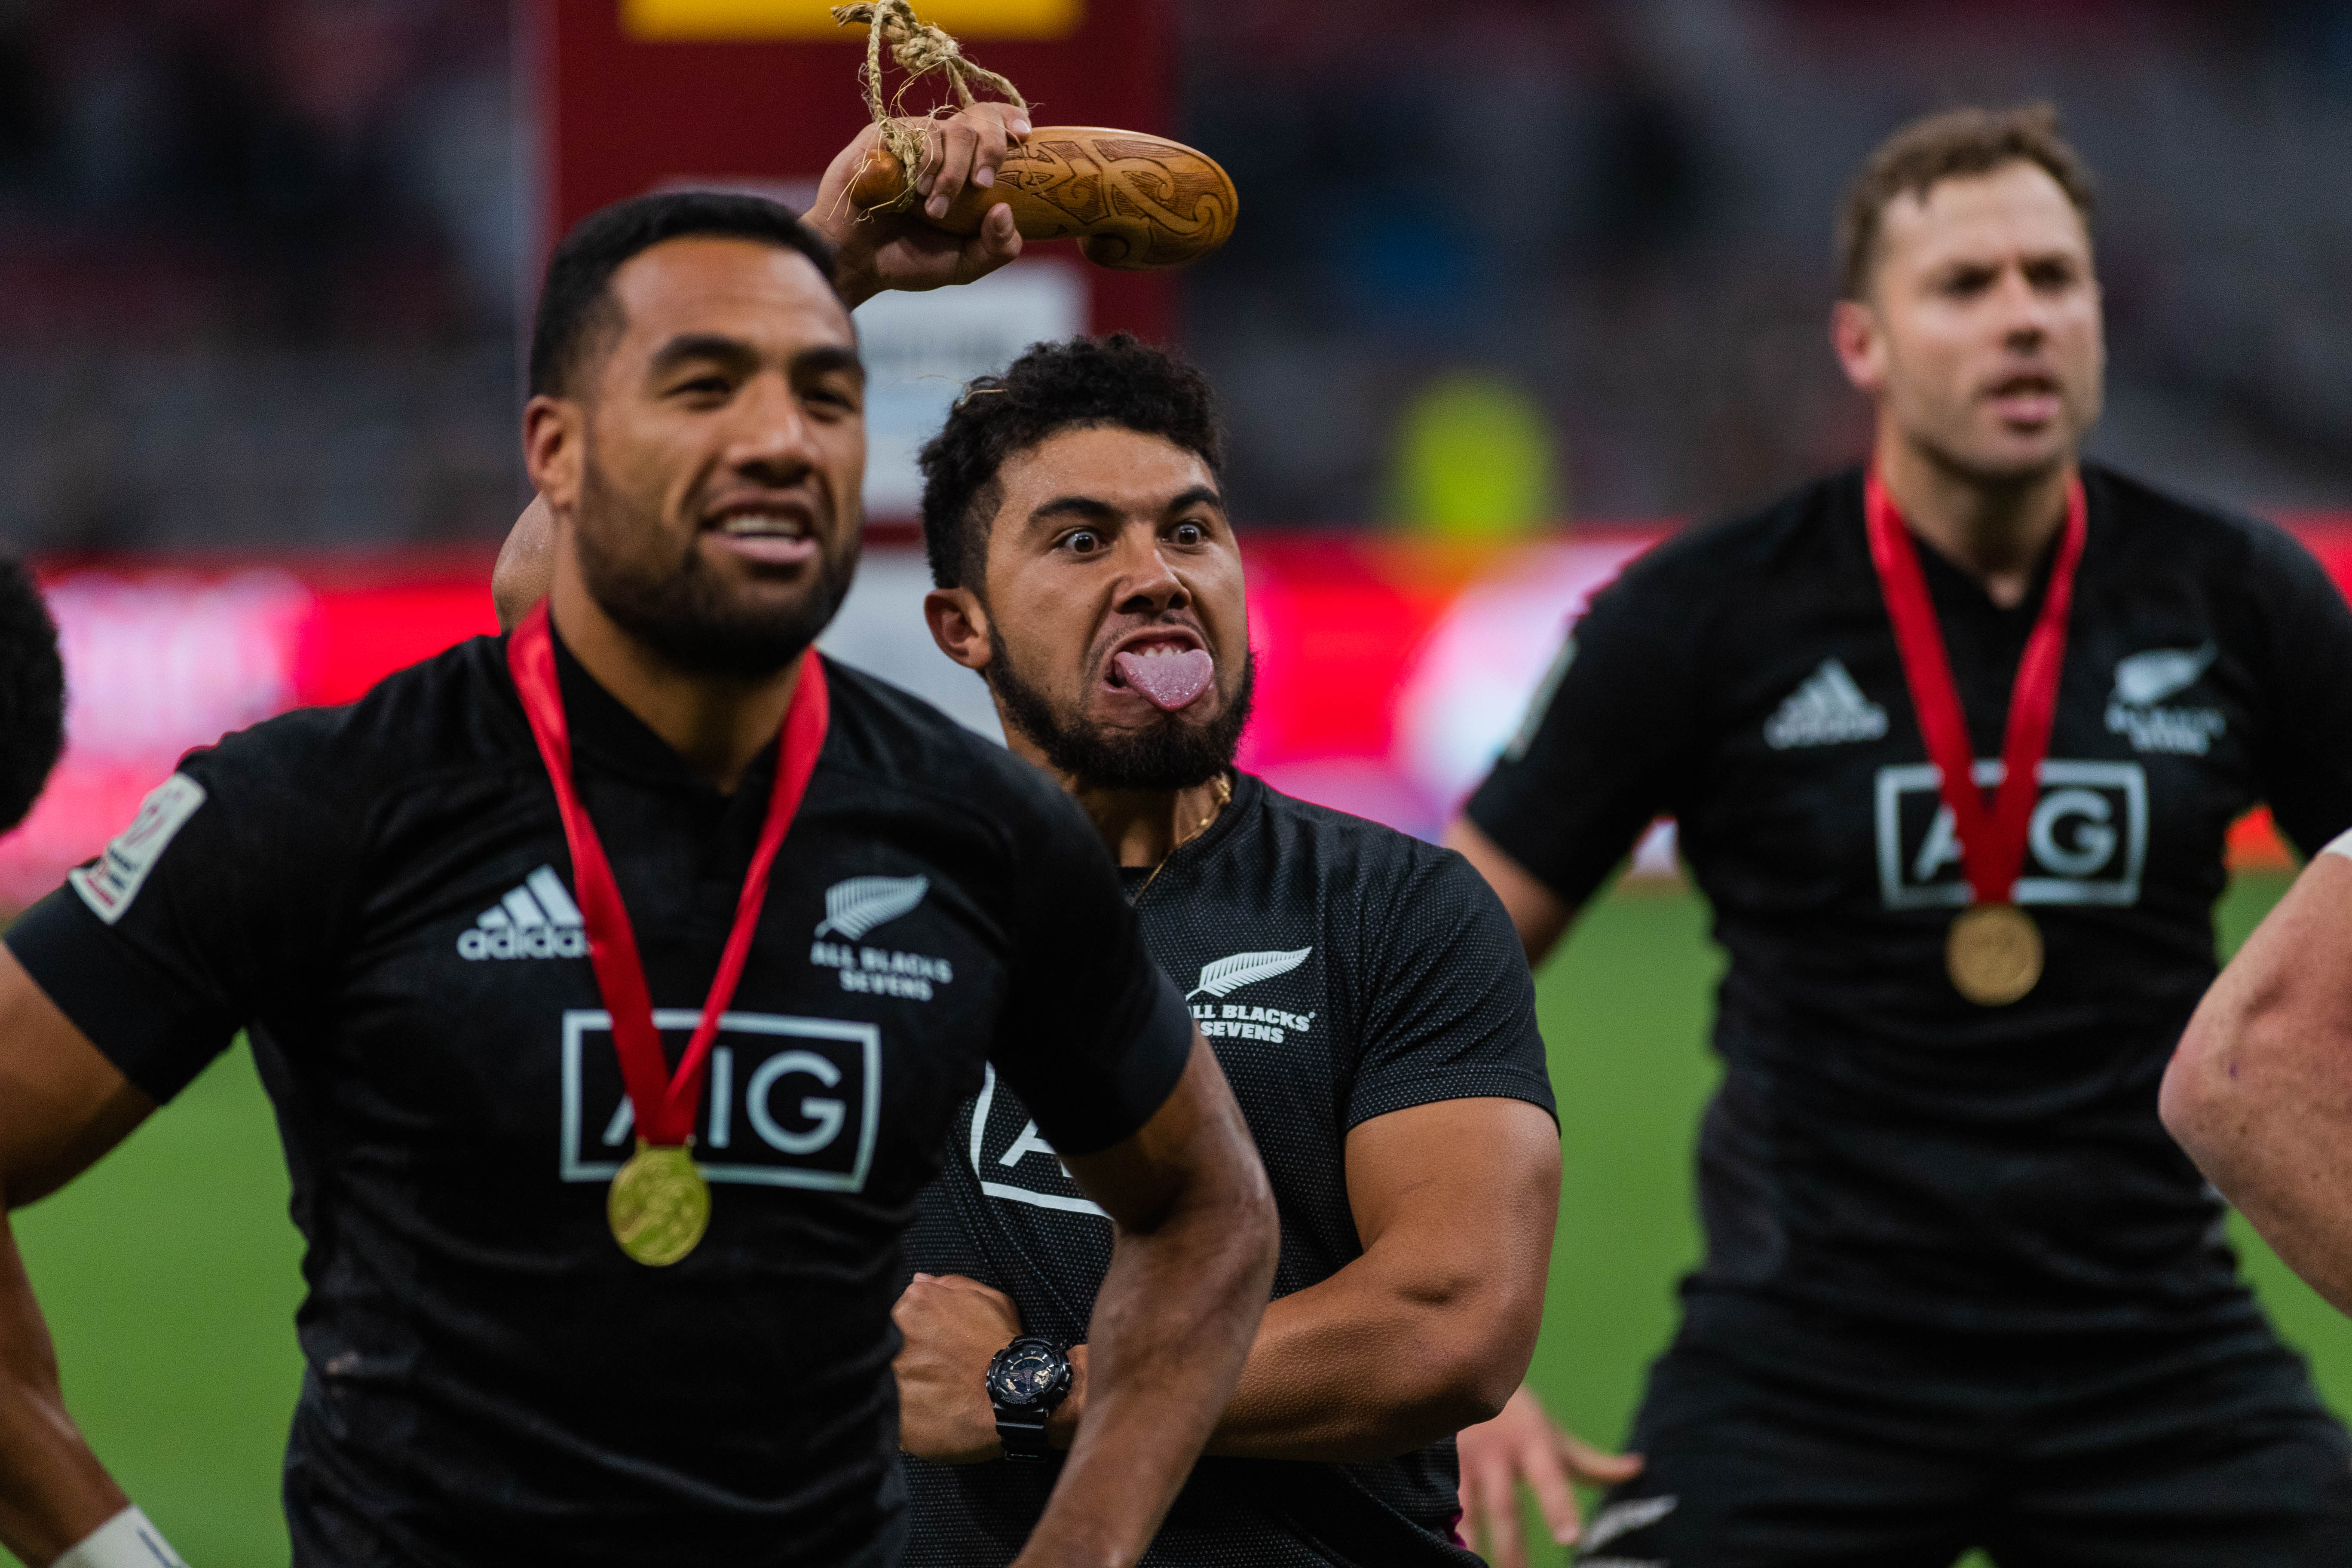 After beating Australia for the gold medal, New Zealand treated the crowd to a traditional Haka.